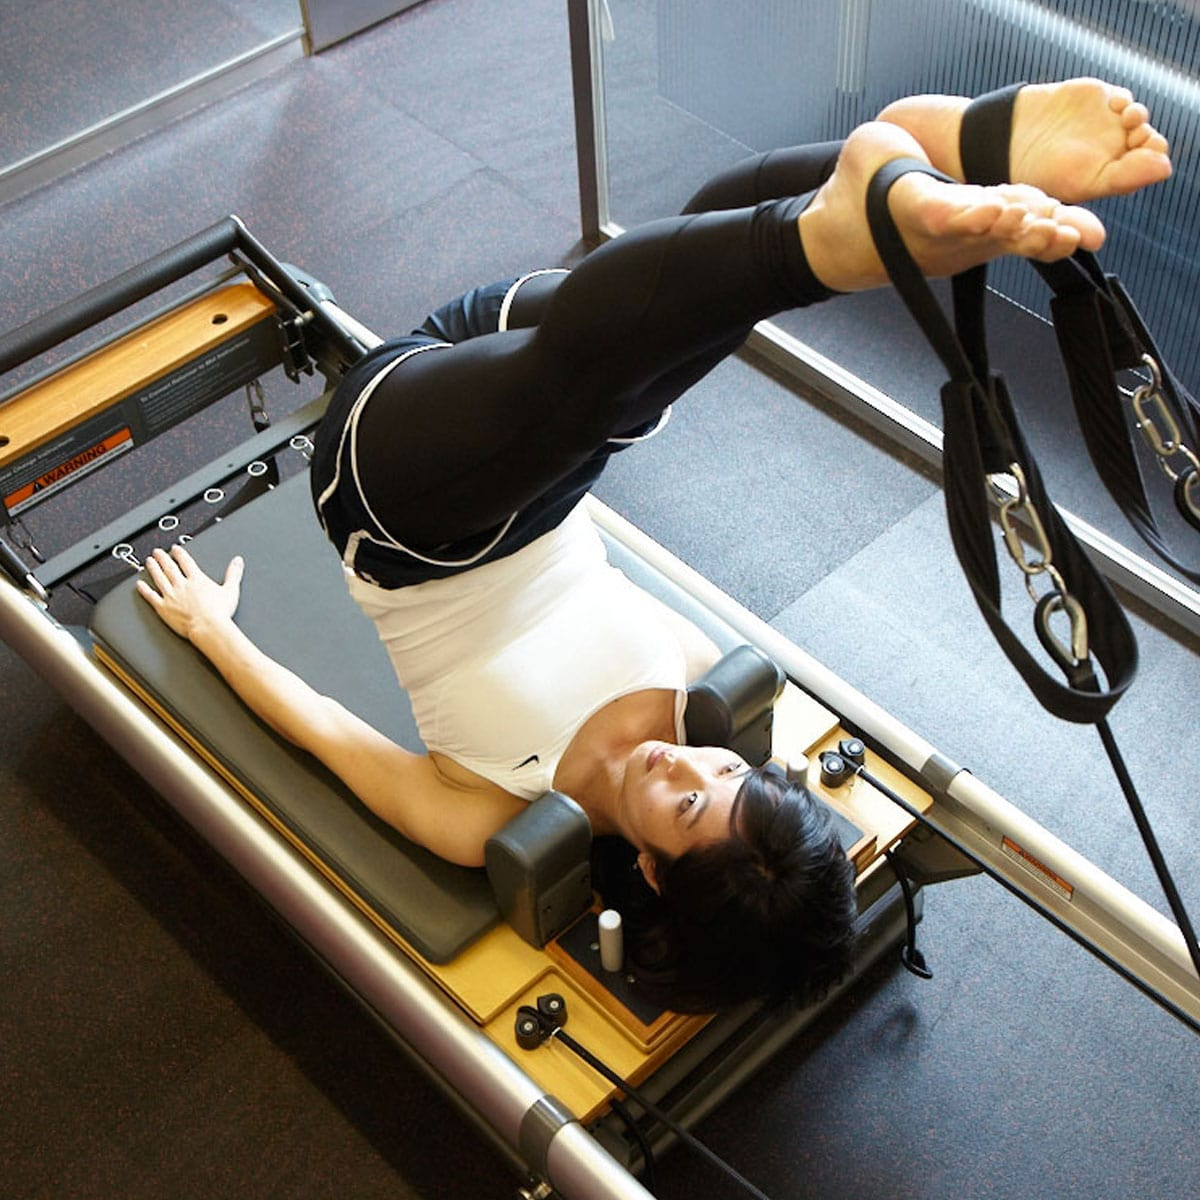 PRE-TRAINING Physion MD / Supreme Vision / TWRCON / P-up Stretch TW Yoga / TWRF / TW PILATES / TWSL / TWSWTH プレトレーニング